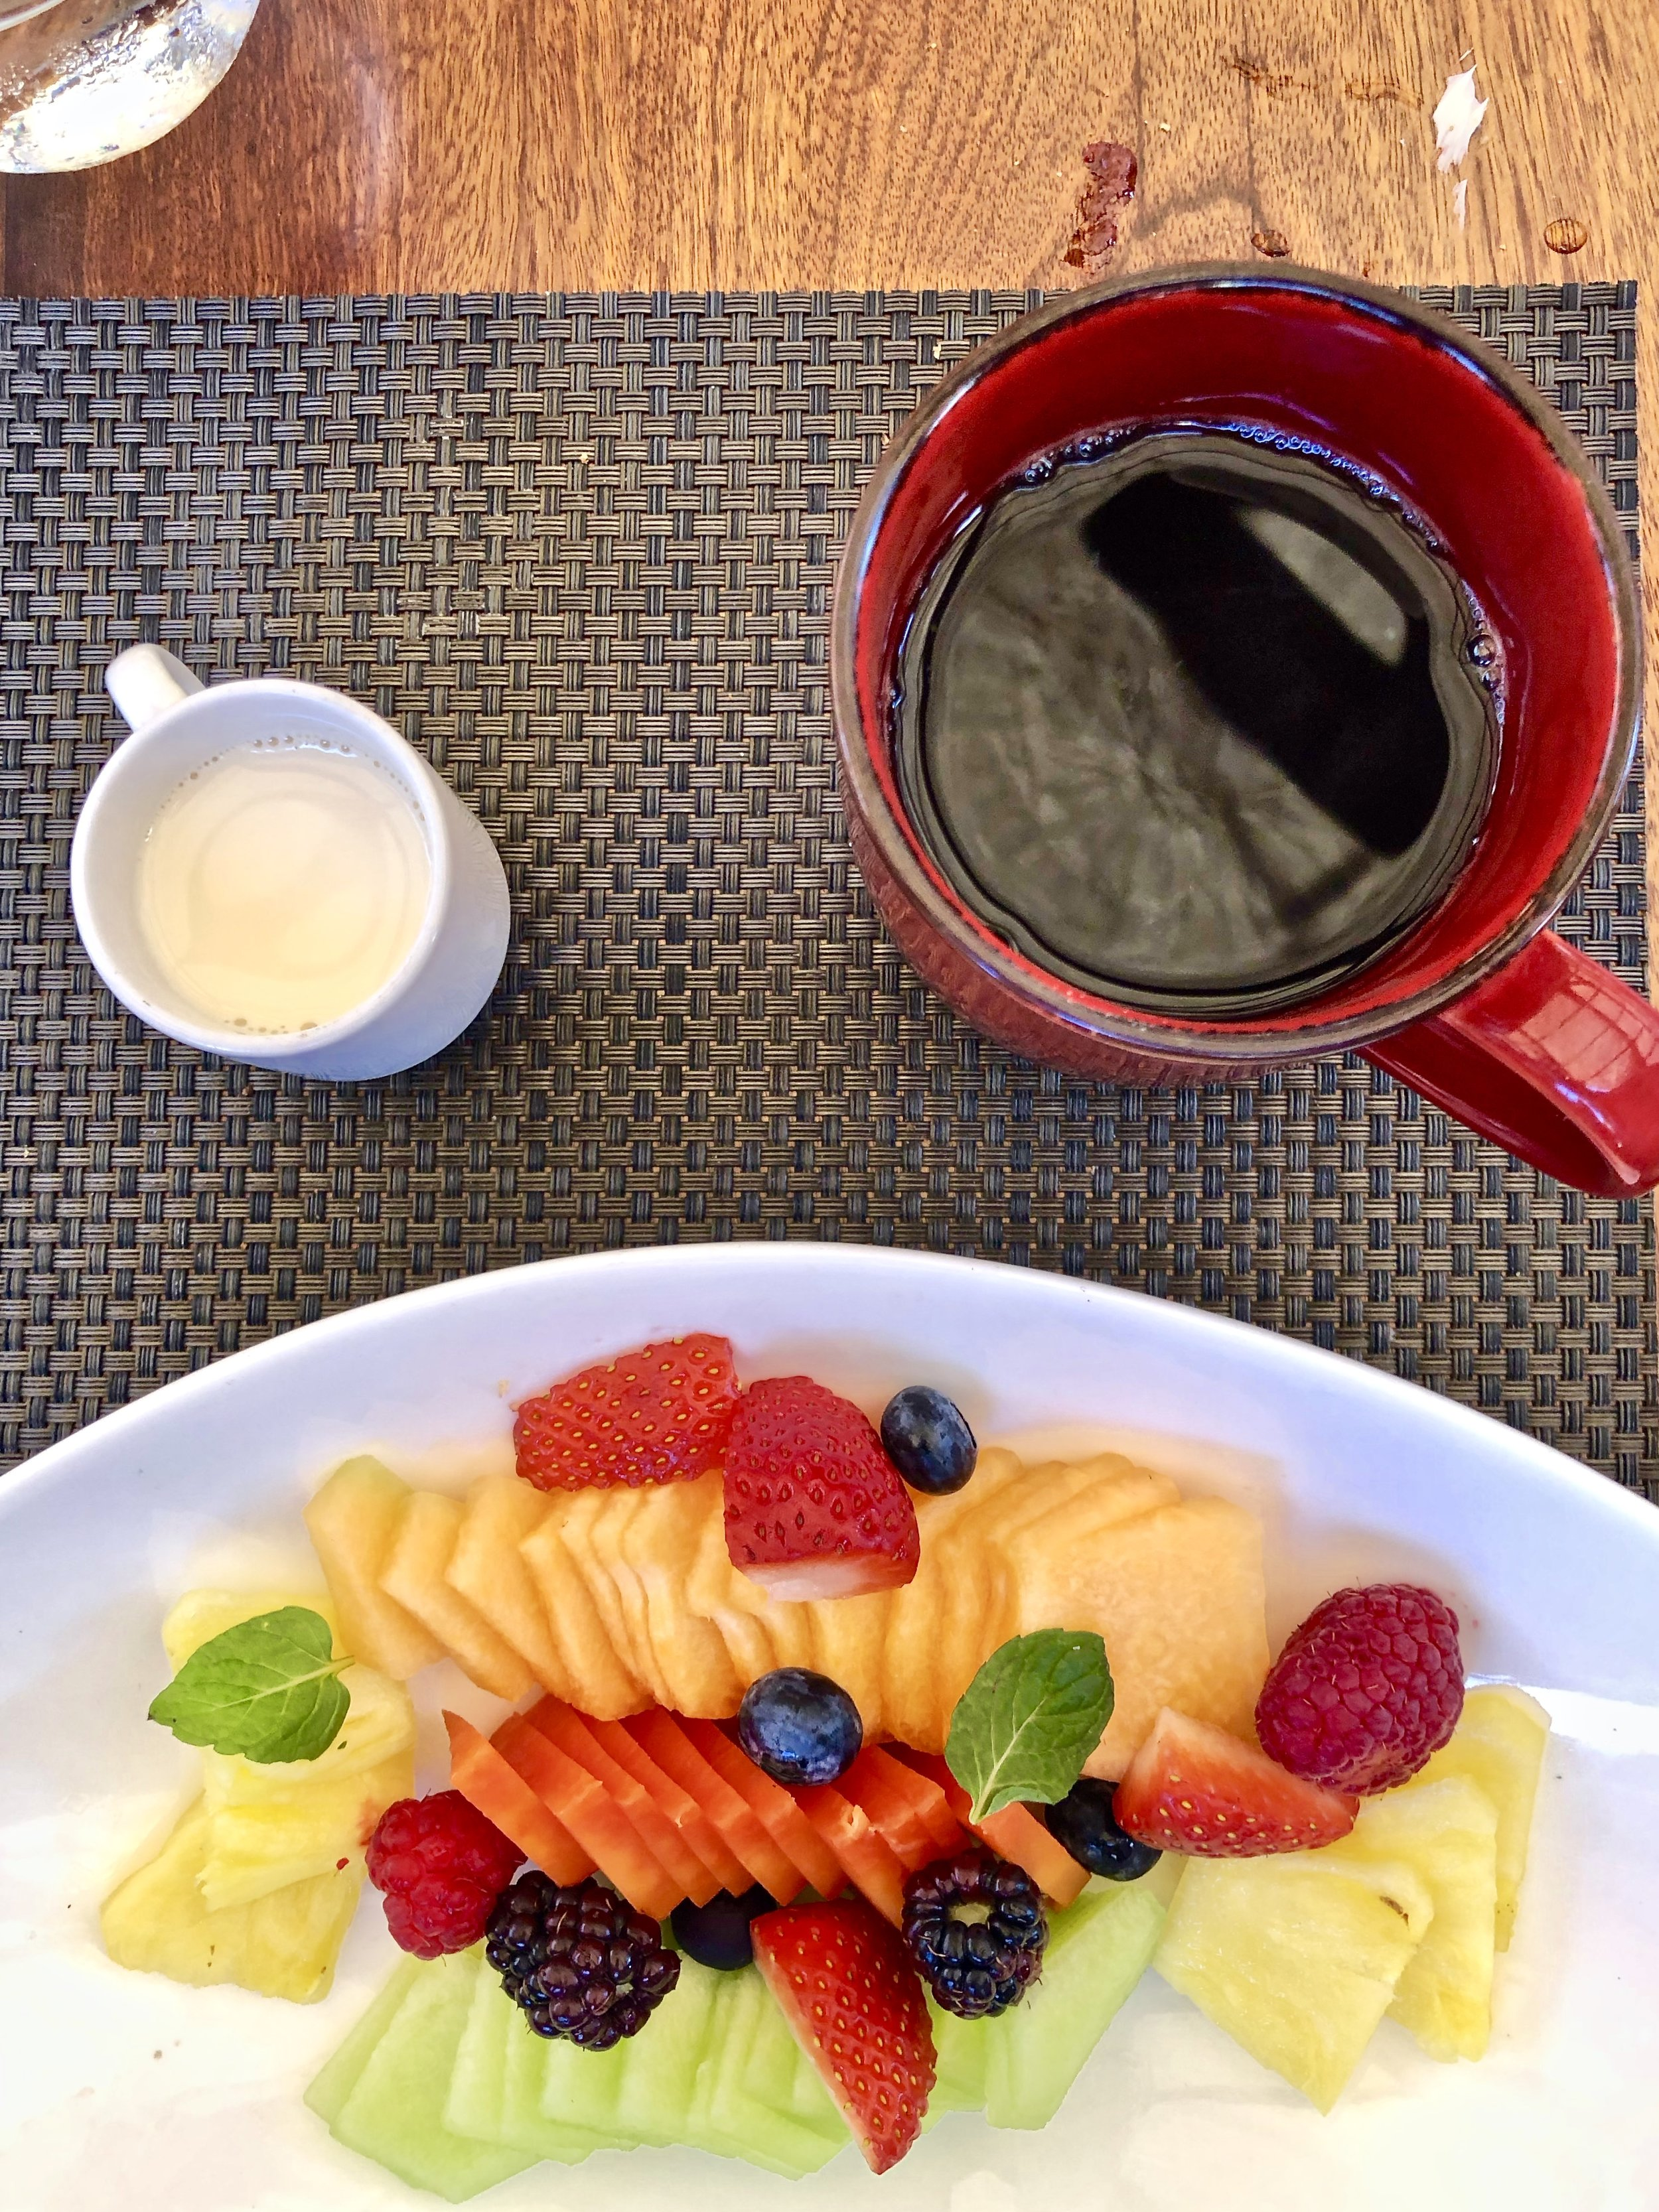 Fruits, coffee and toast was the free breakfast everyday